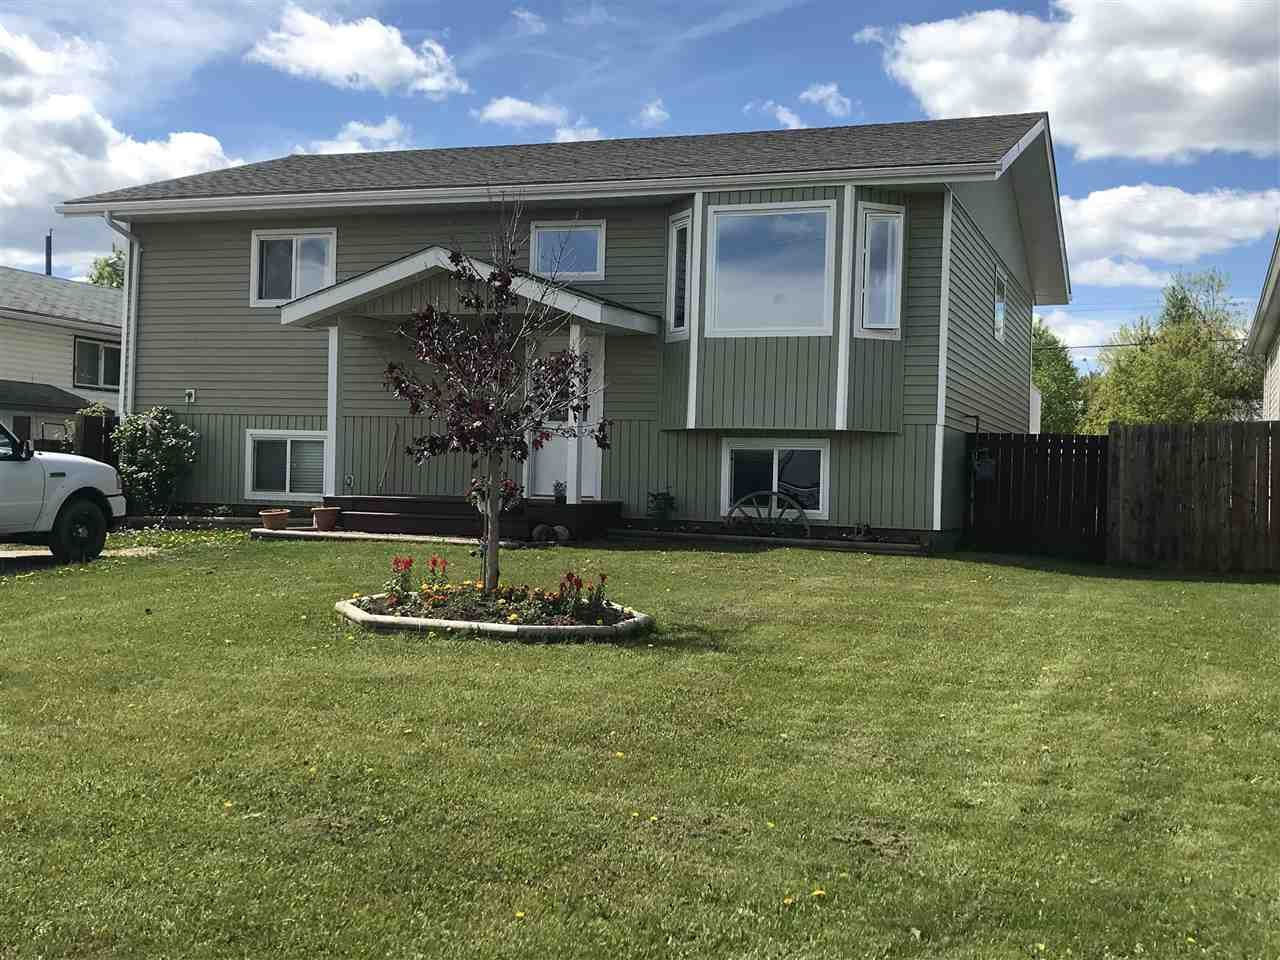 """Main Photo: 9664 N SPRUCE Street: Taylor House for sale in """"TAYLOR"""" (Fort St. John (Zone 60))  : MLS®# R2429549"""